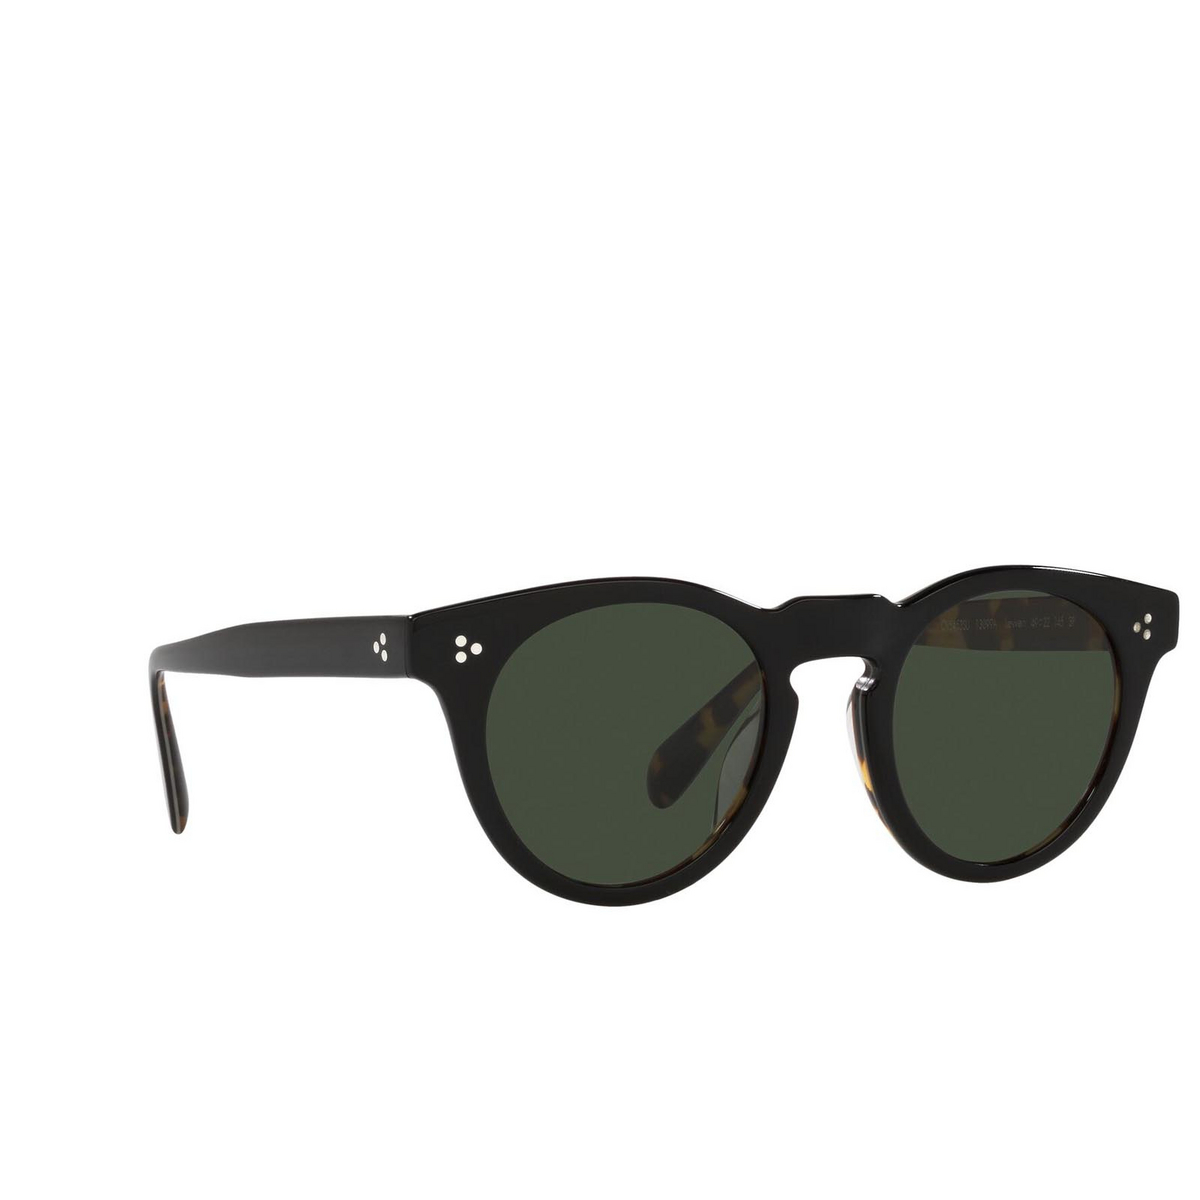 Oliver Peoples® Round Sunglasses: Lewen OV5453SU color Black/dtbk 13099A - three-quarters view.